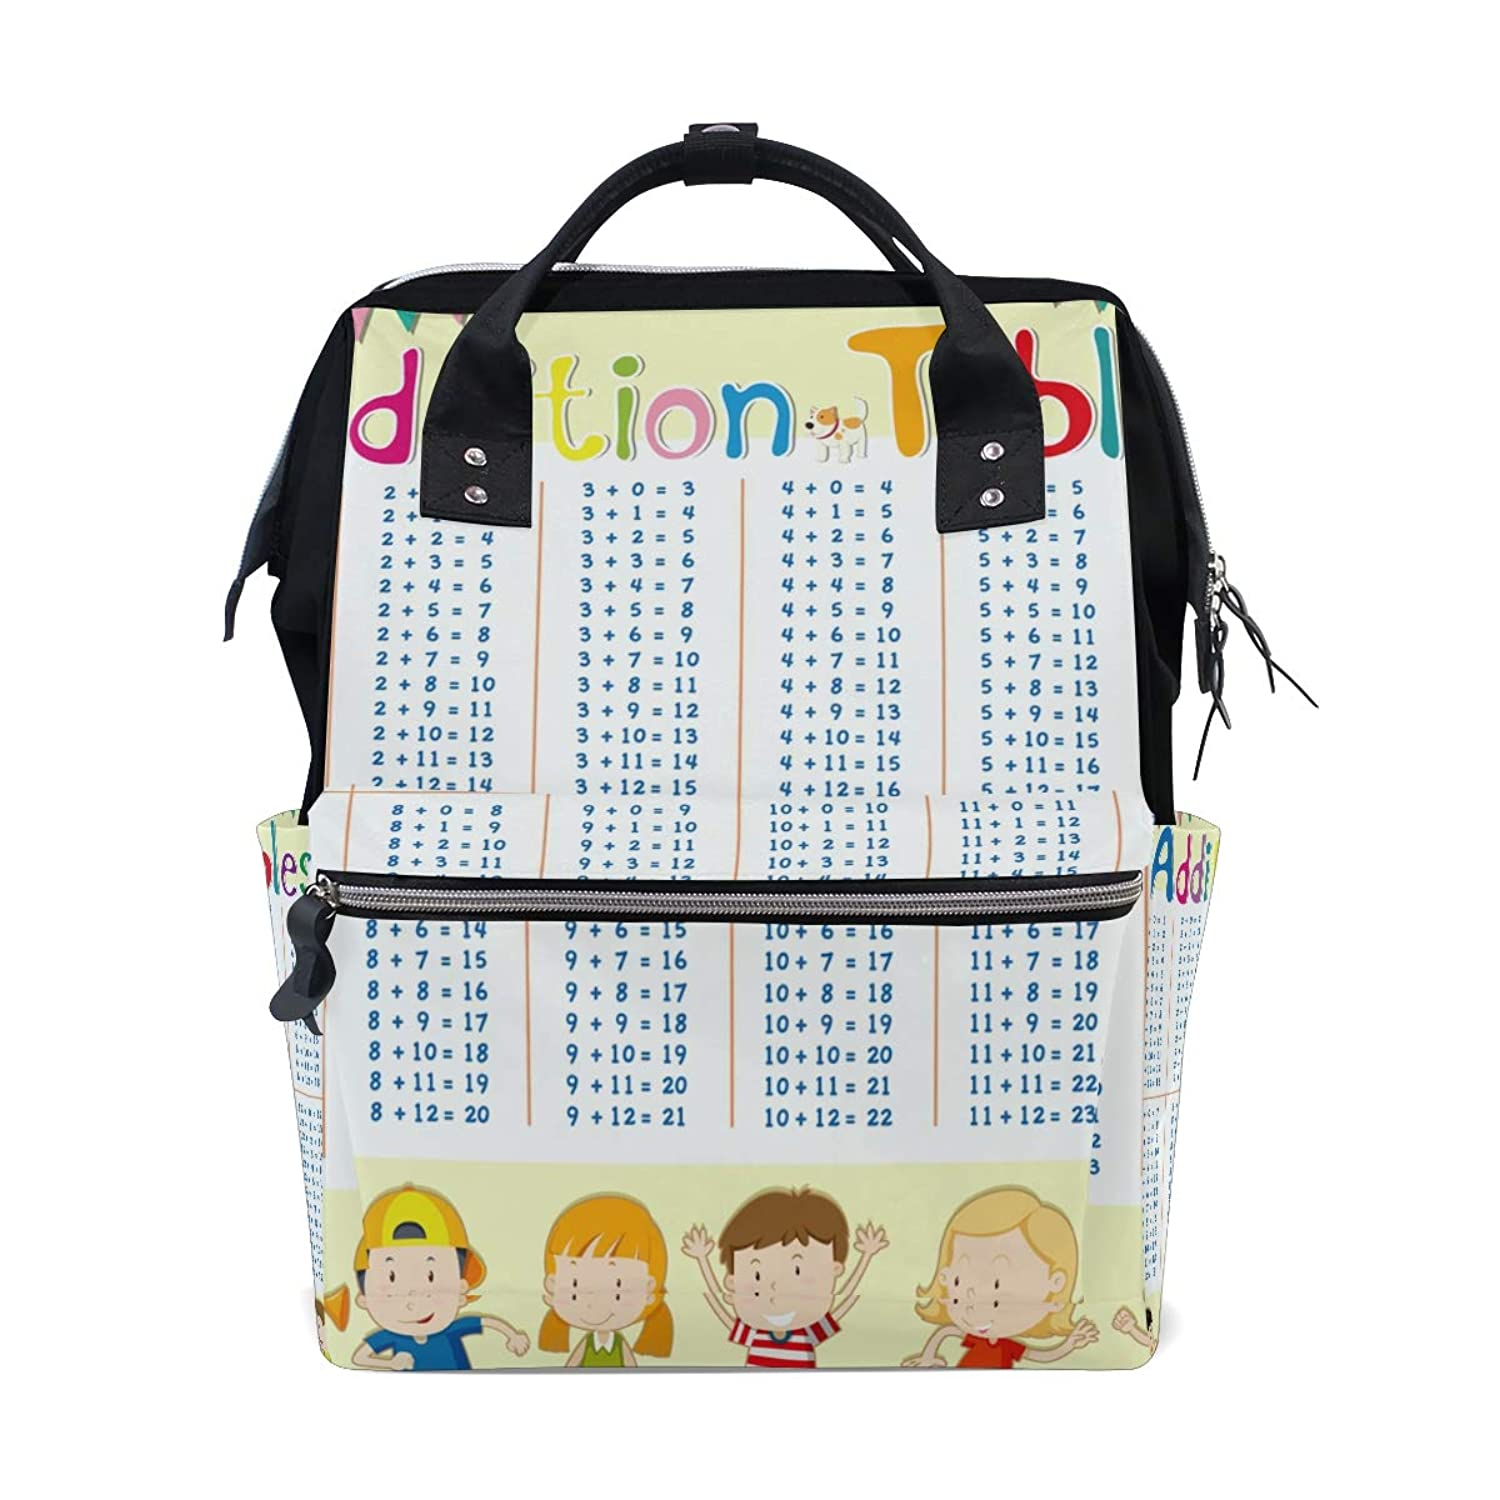 Kids Addition Multiplication Table School Backpack Large Capacity Mummy Bags Laptop Handbag Casual Travel Rucksack Satchel For Women Men Adult Teen Children